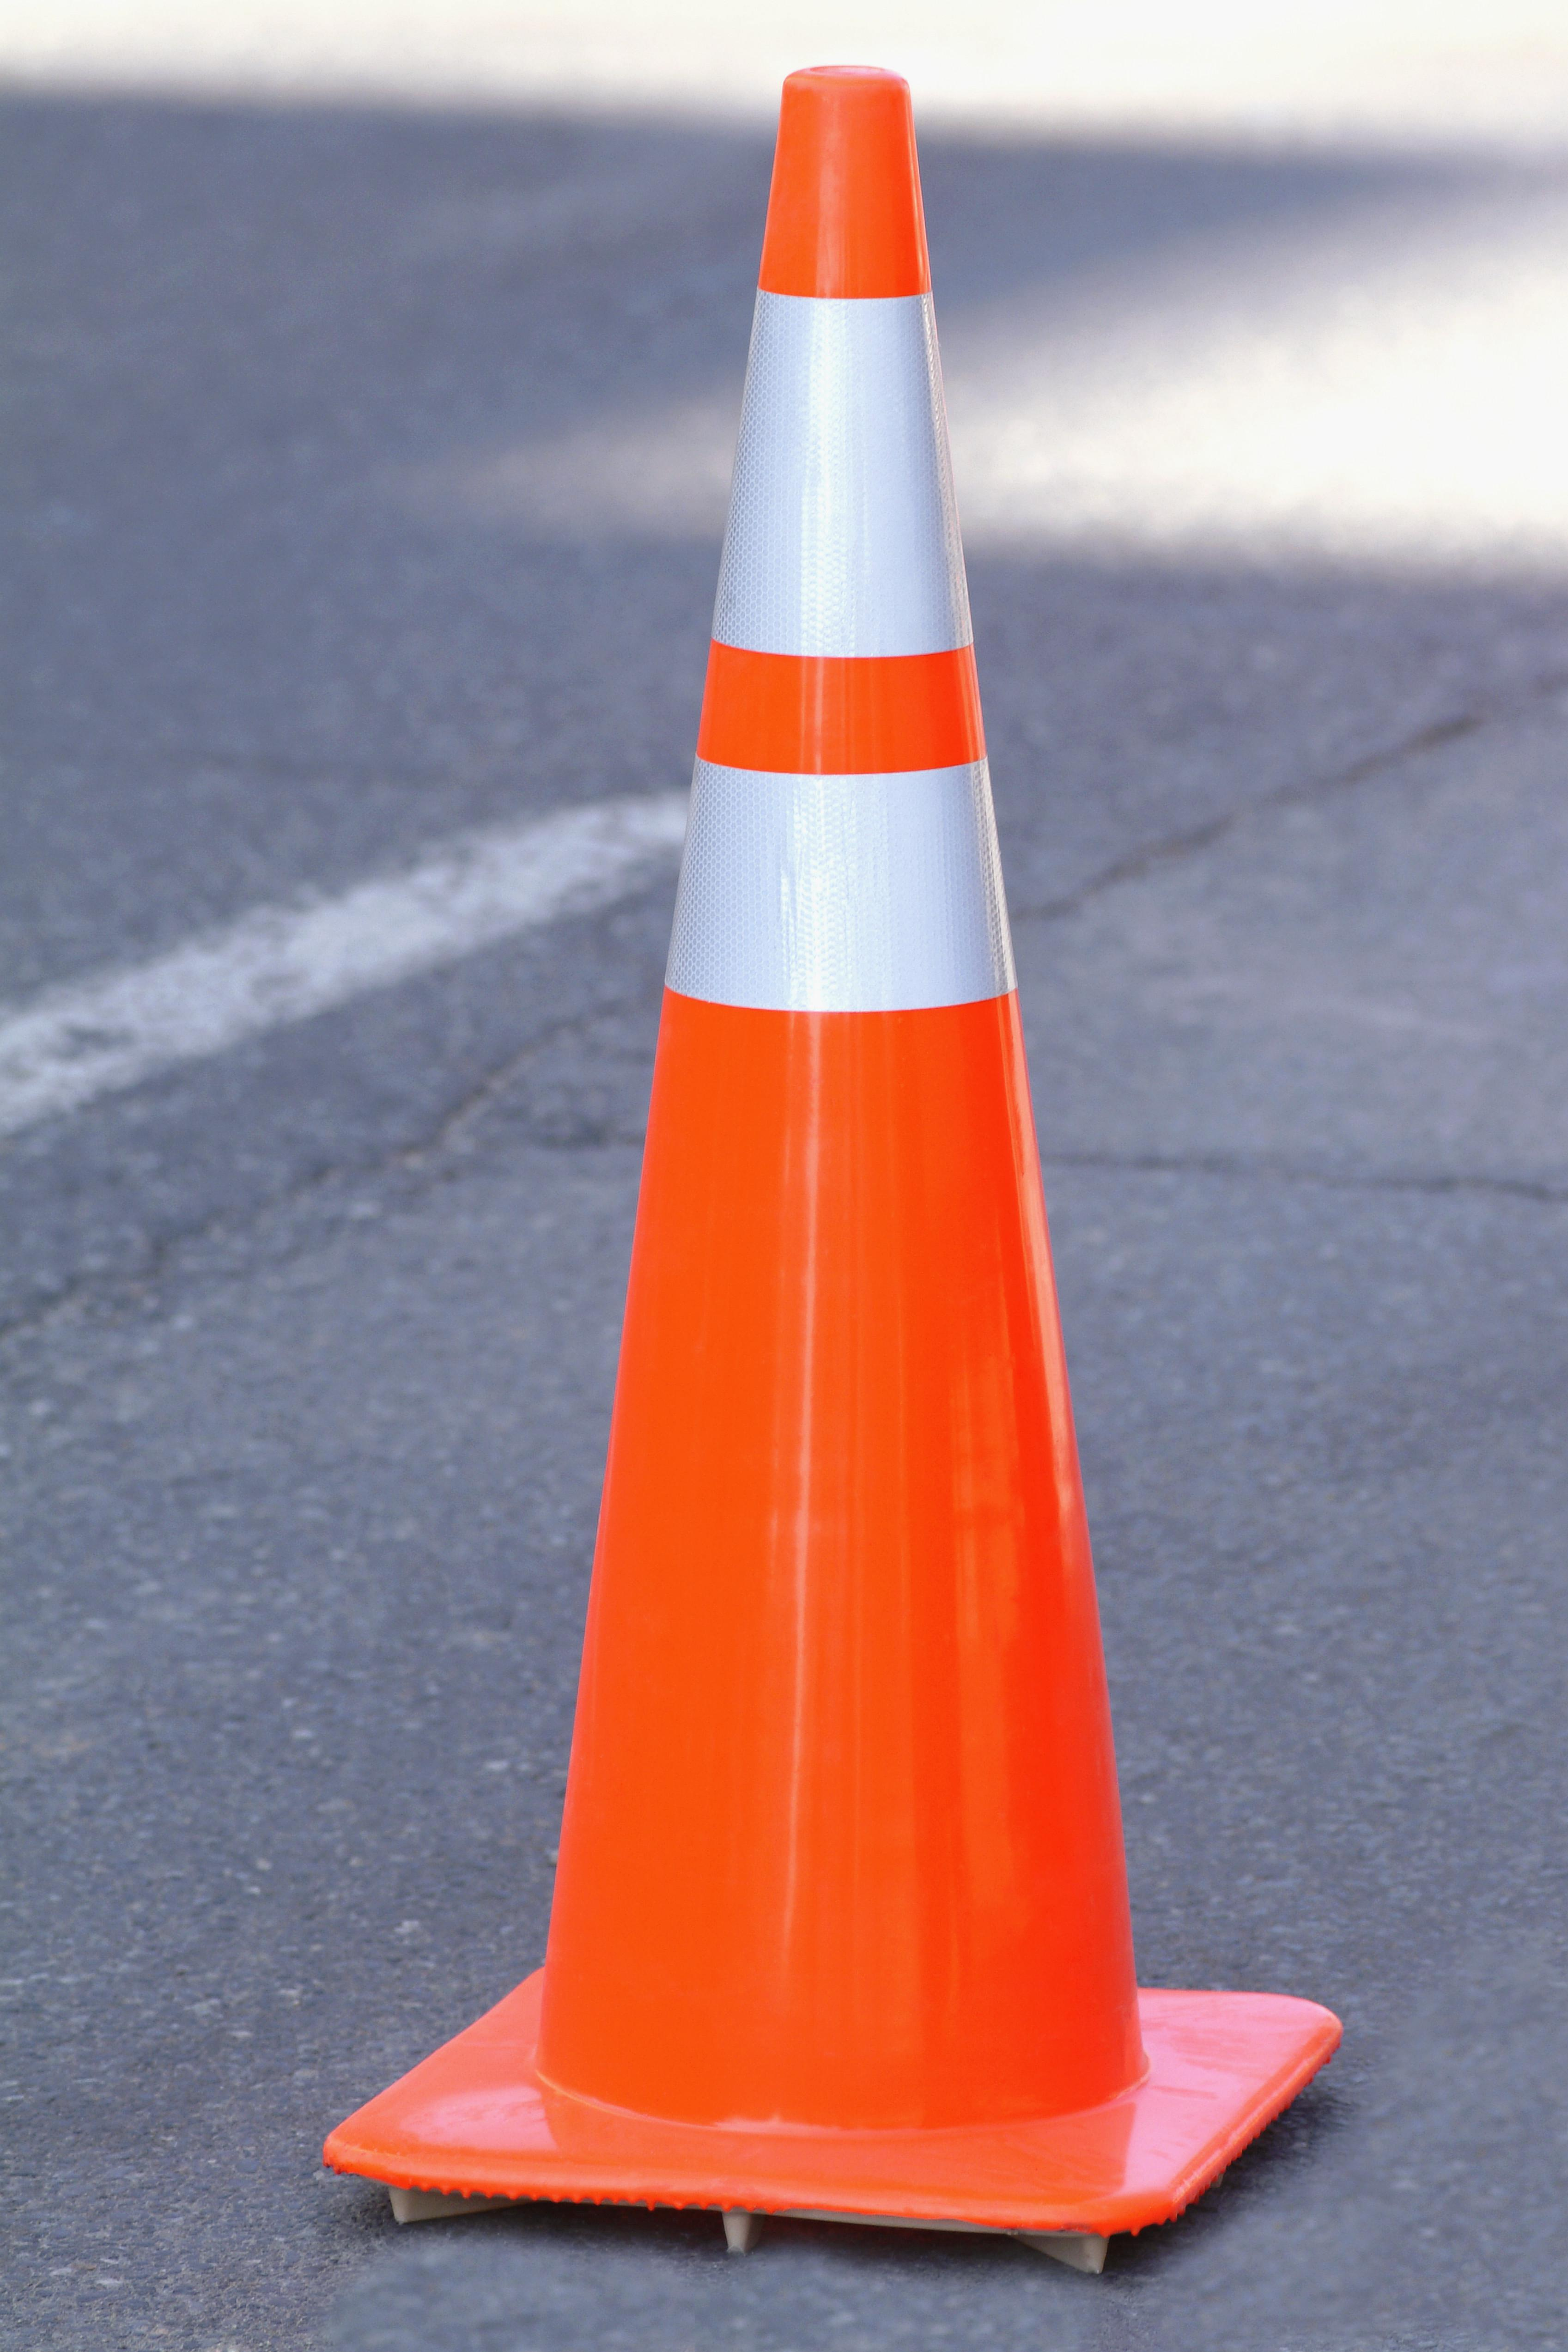 Traffic cone, close-up